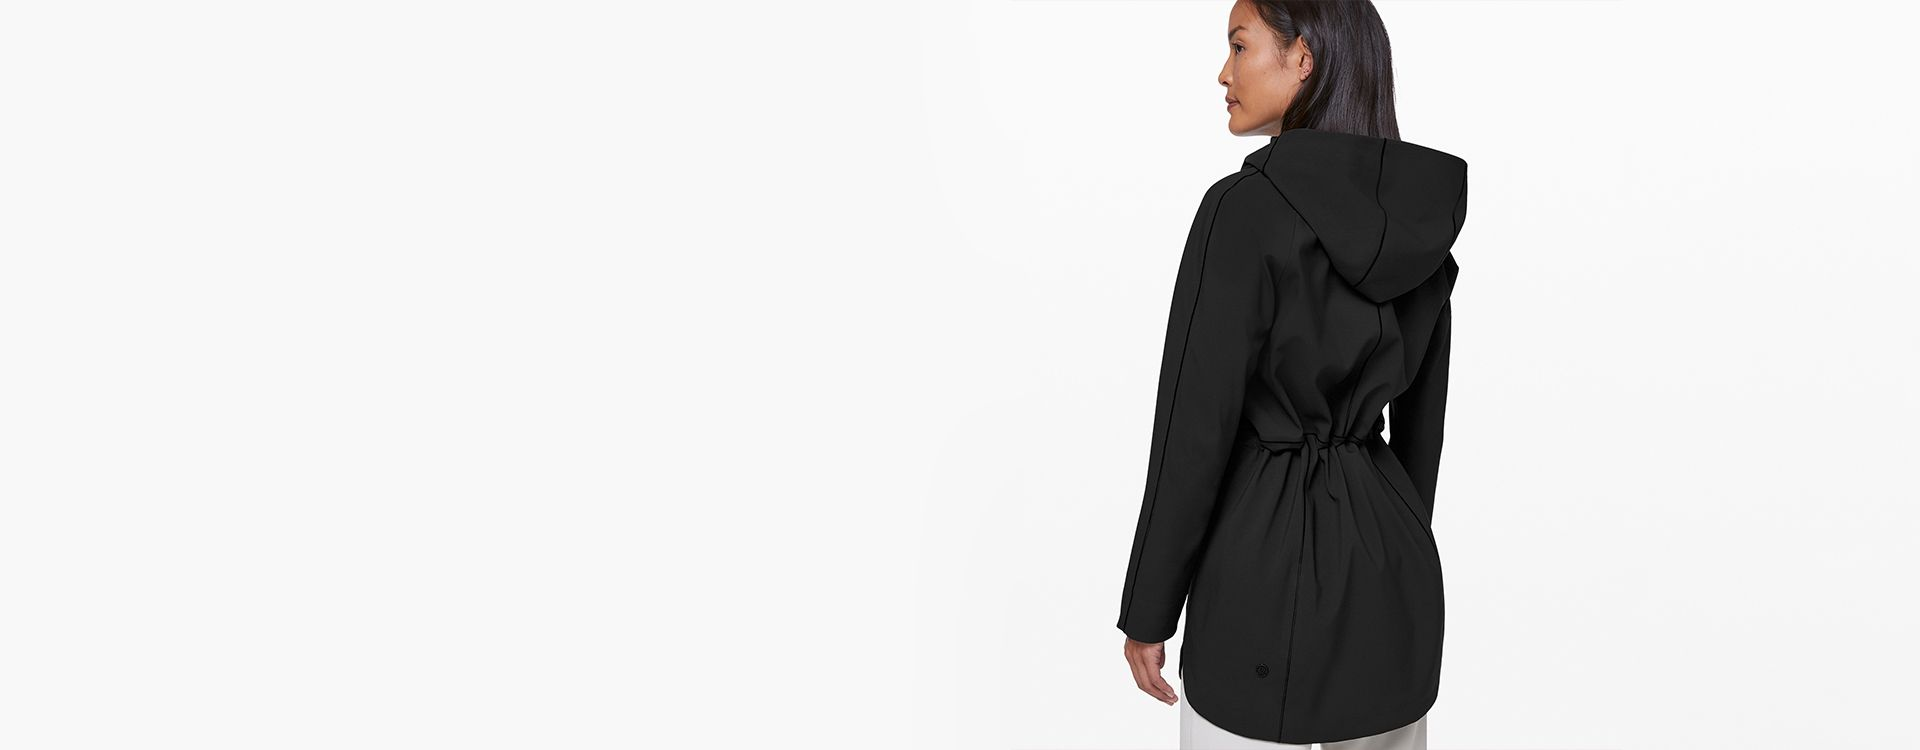 bdba7379 All JacketsClimate control for your closet with outerwear for any weather.